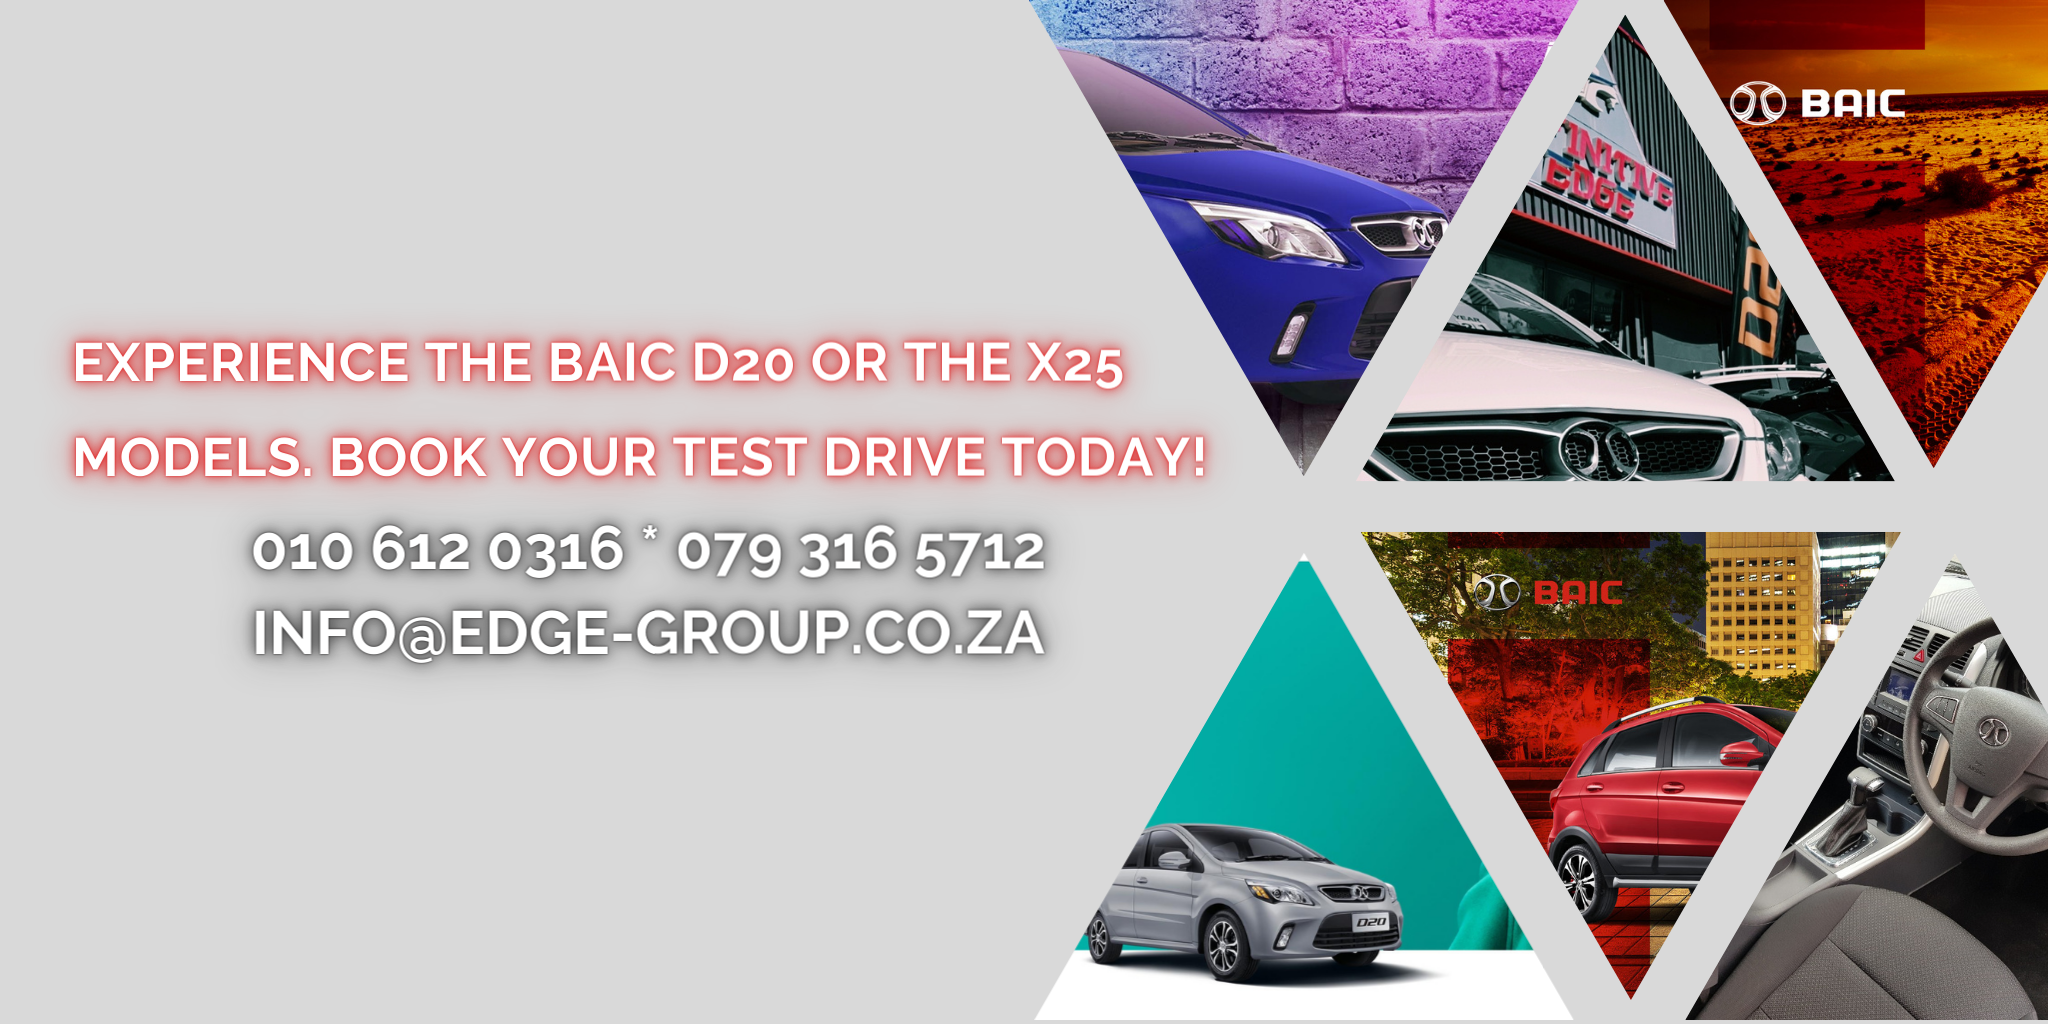 Copy of EXPERIENCE THE BAIC D20 OR THE X25 MODELS. BOOK YOUR TEST DRIVE TODAY!